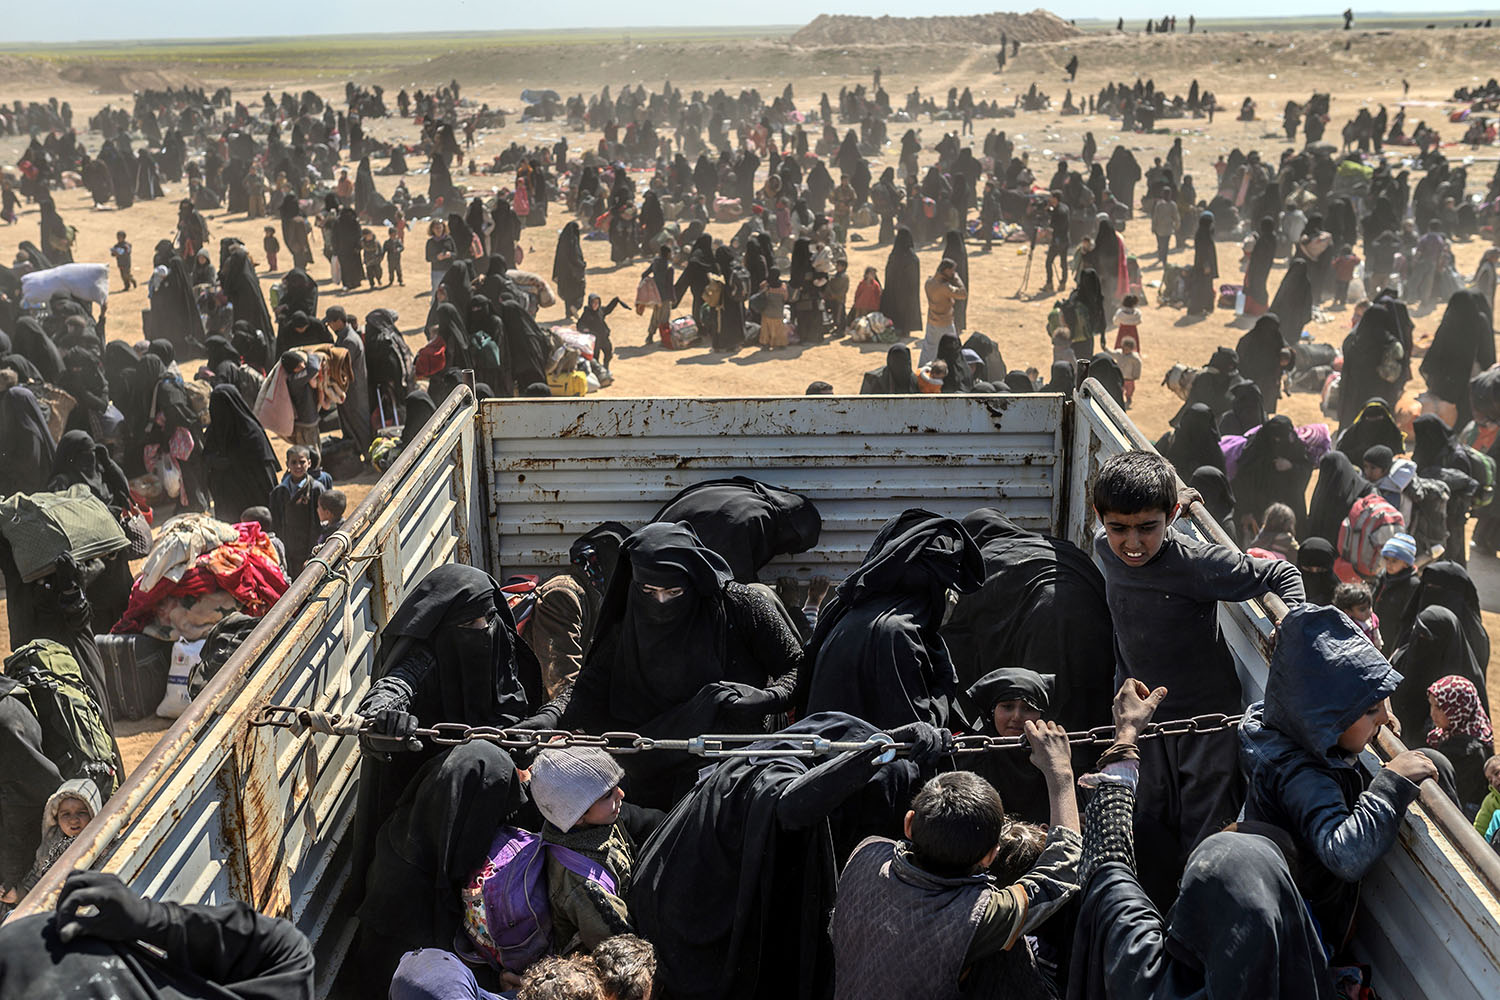 Evacuees from Baghouz arrive at a screening area in the eastern Syrian province of Deir Ezzor on March 6. BULENT KILIC/AFP/Getty Images